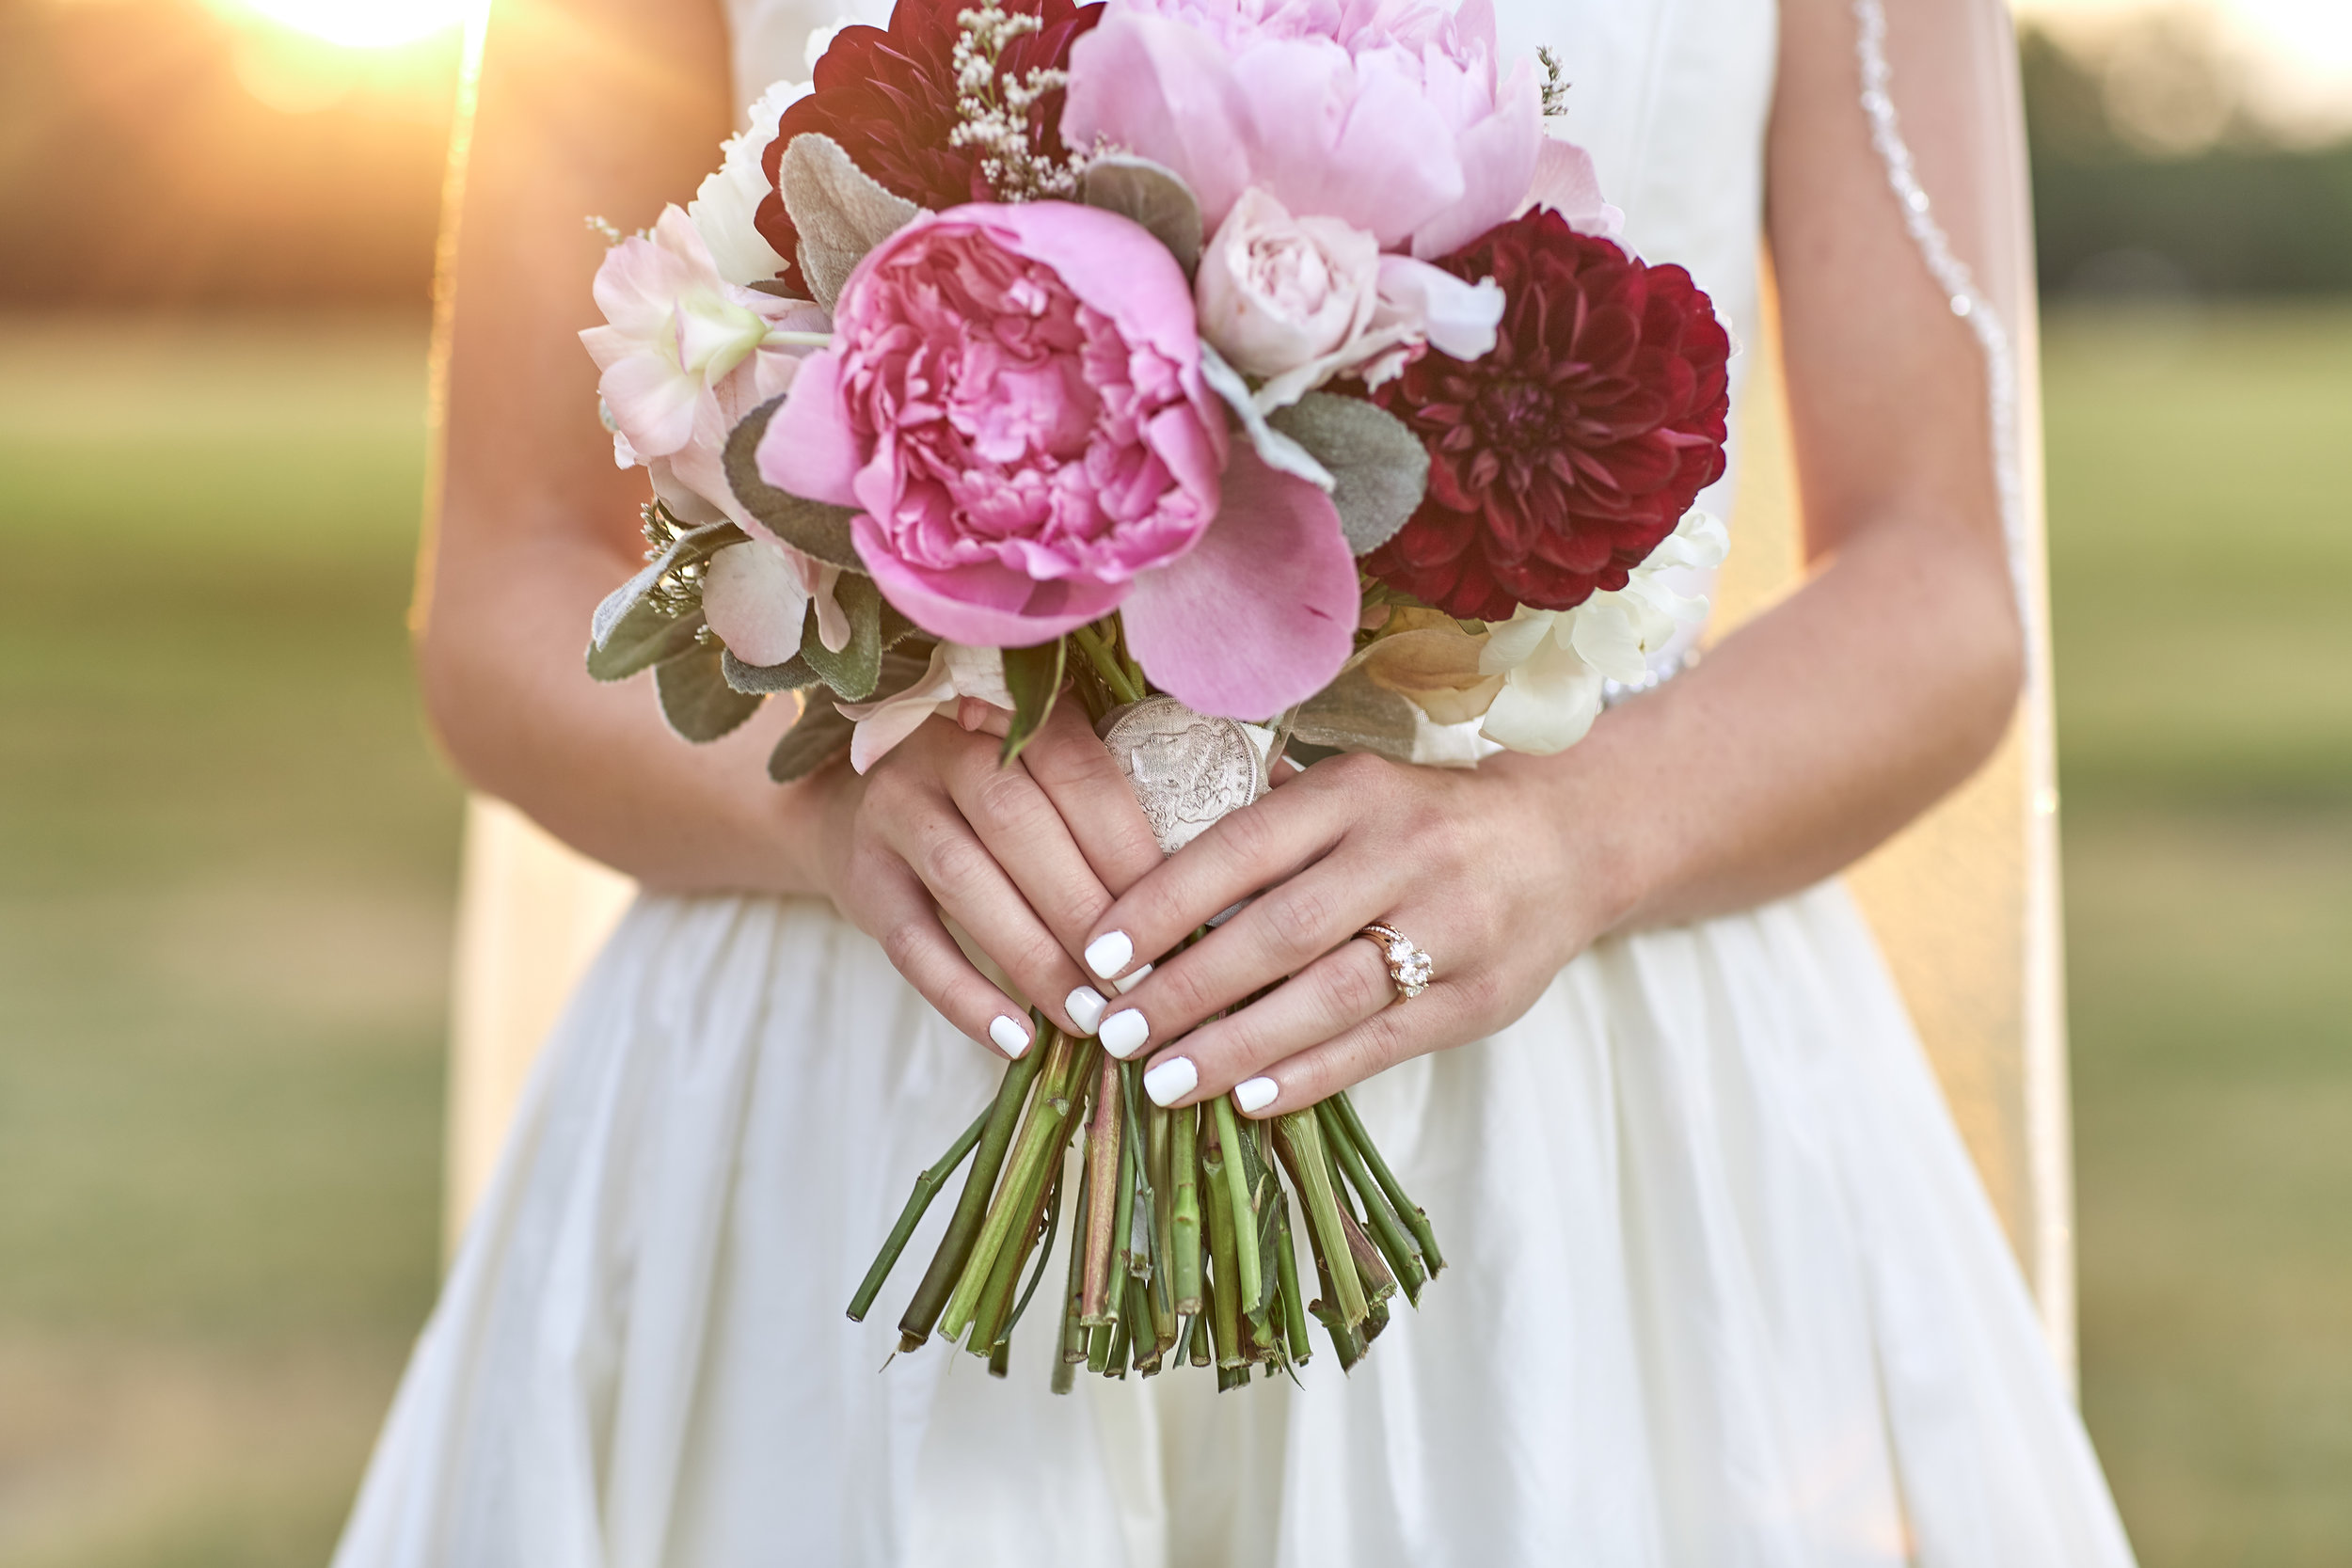 wedding details, bridal bouquet, lubbock wedding photography, golden hour, lens flare, sunset, natural light